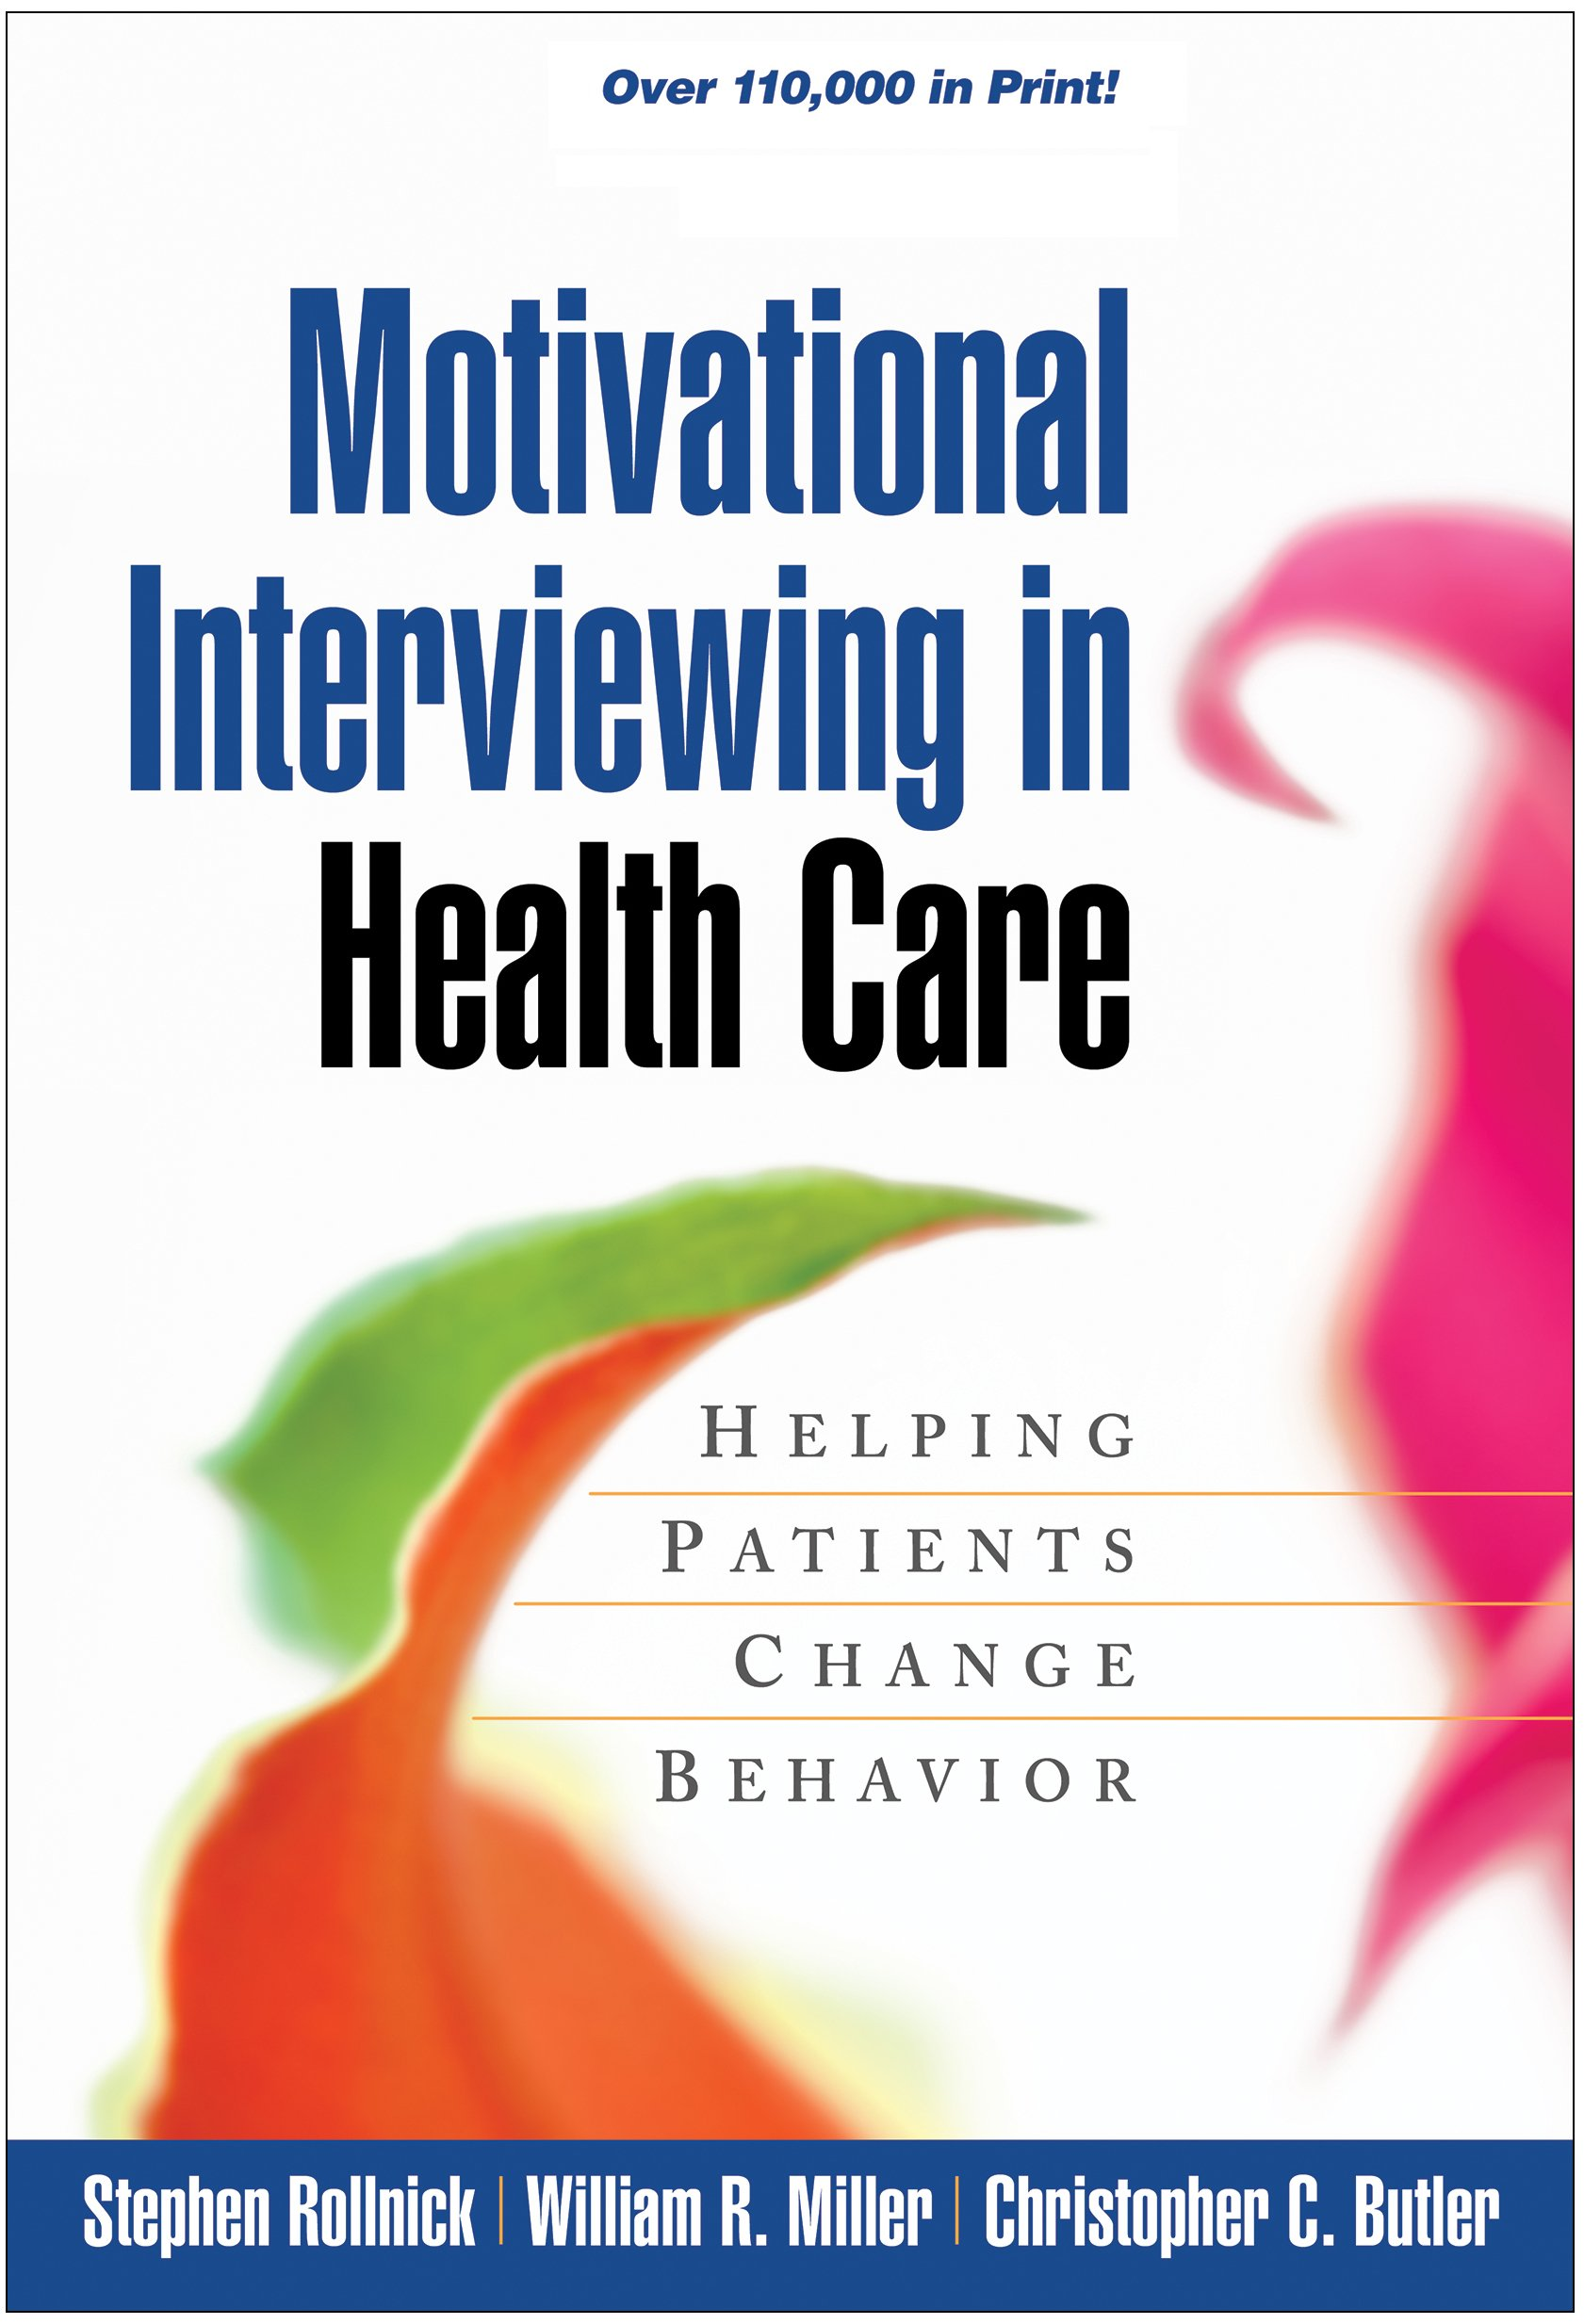 motivational interviewing in health care helping patients change motivational interviewing in health care helping patients change behavior stephen rollnick phd william r miller phd christopher c butler md